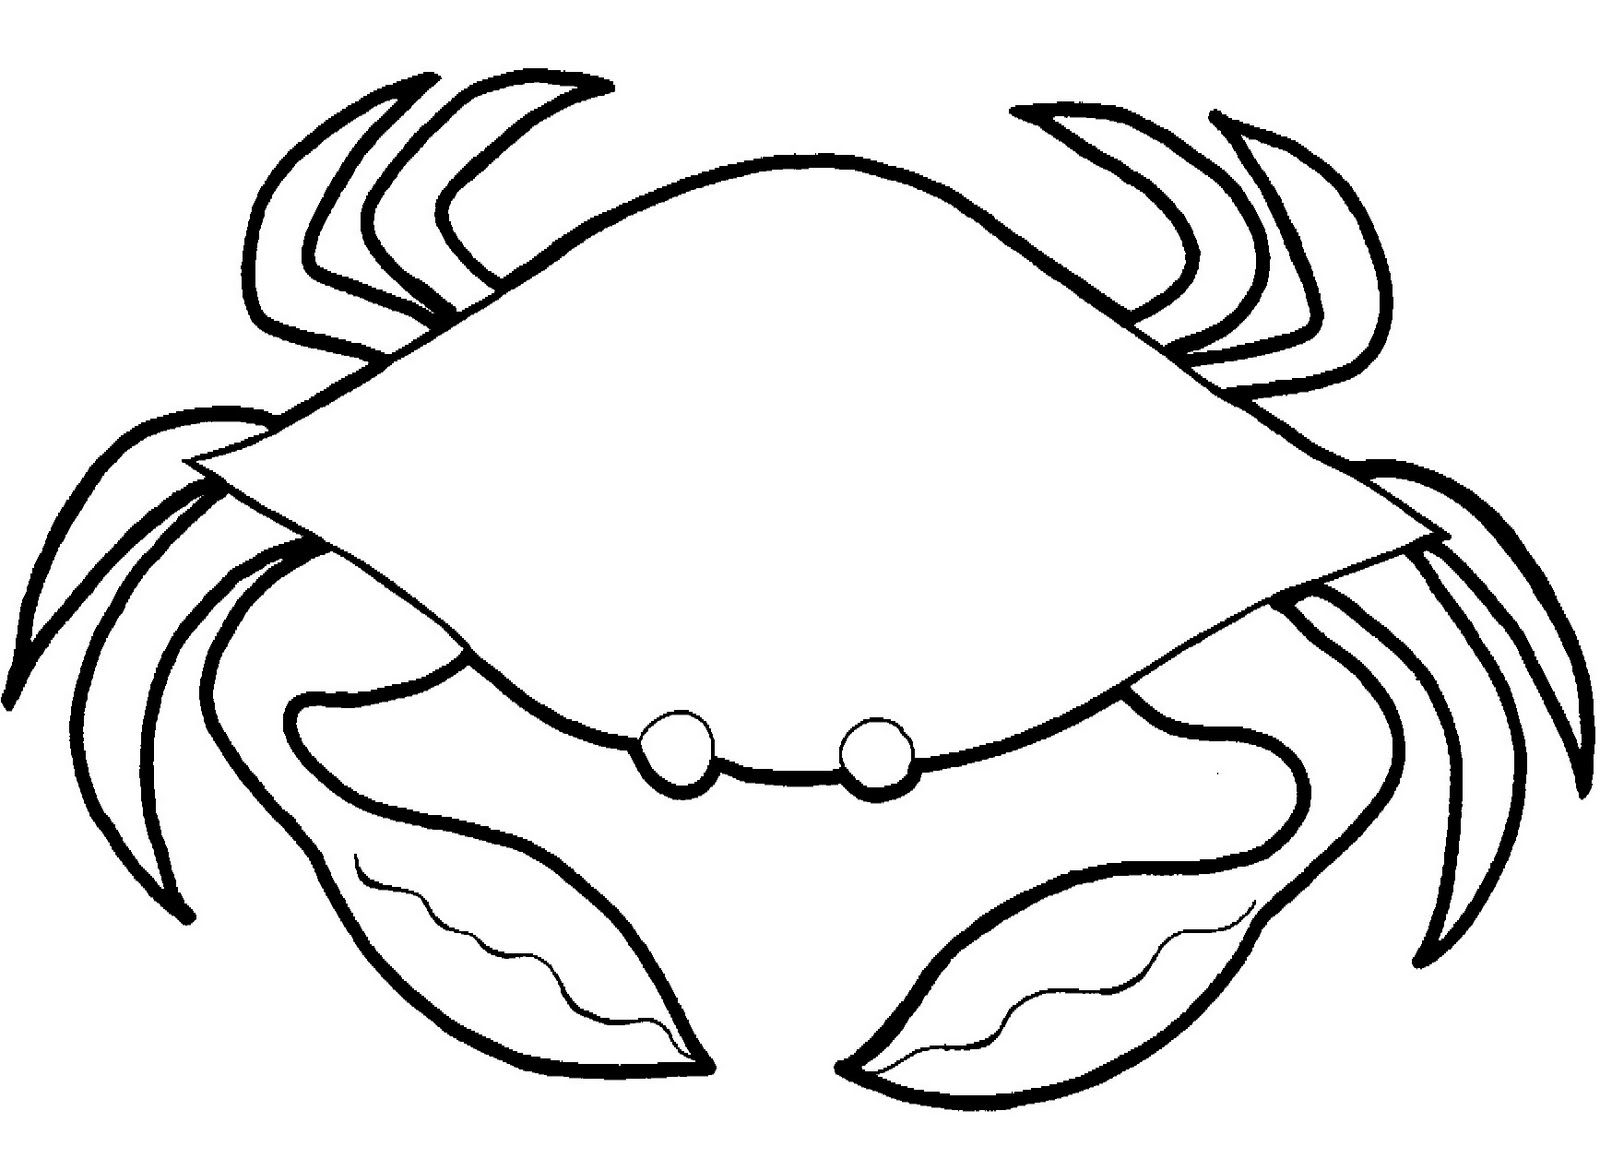 Blue Crab Coloring Page Bed Mattress Sale Animal